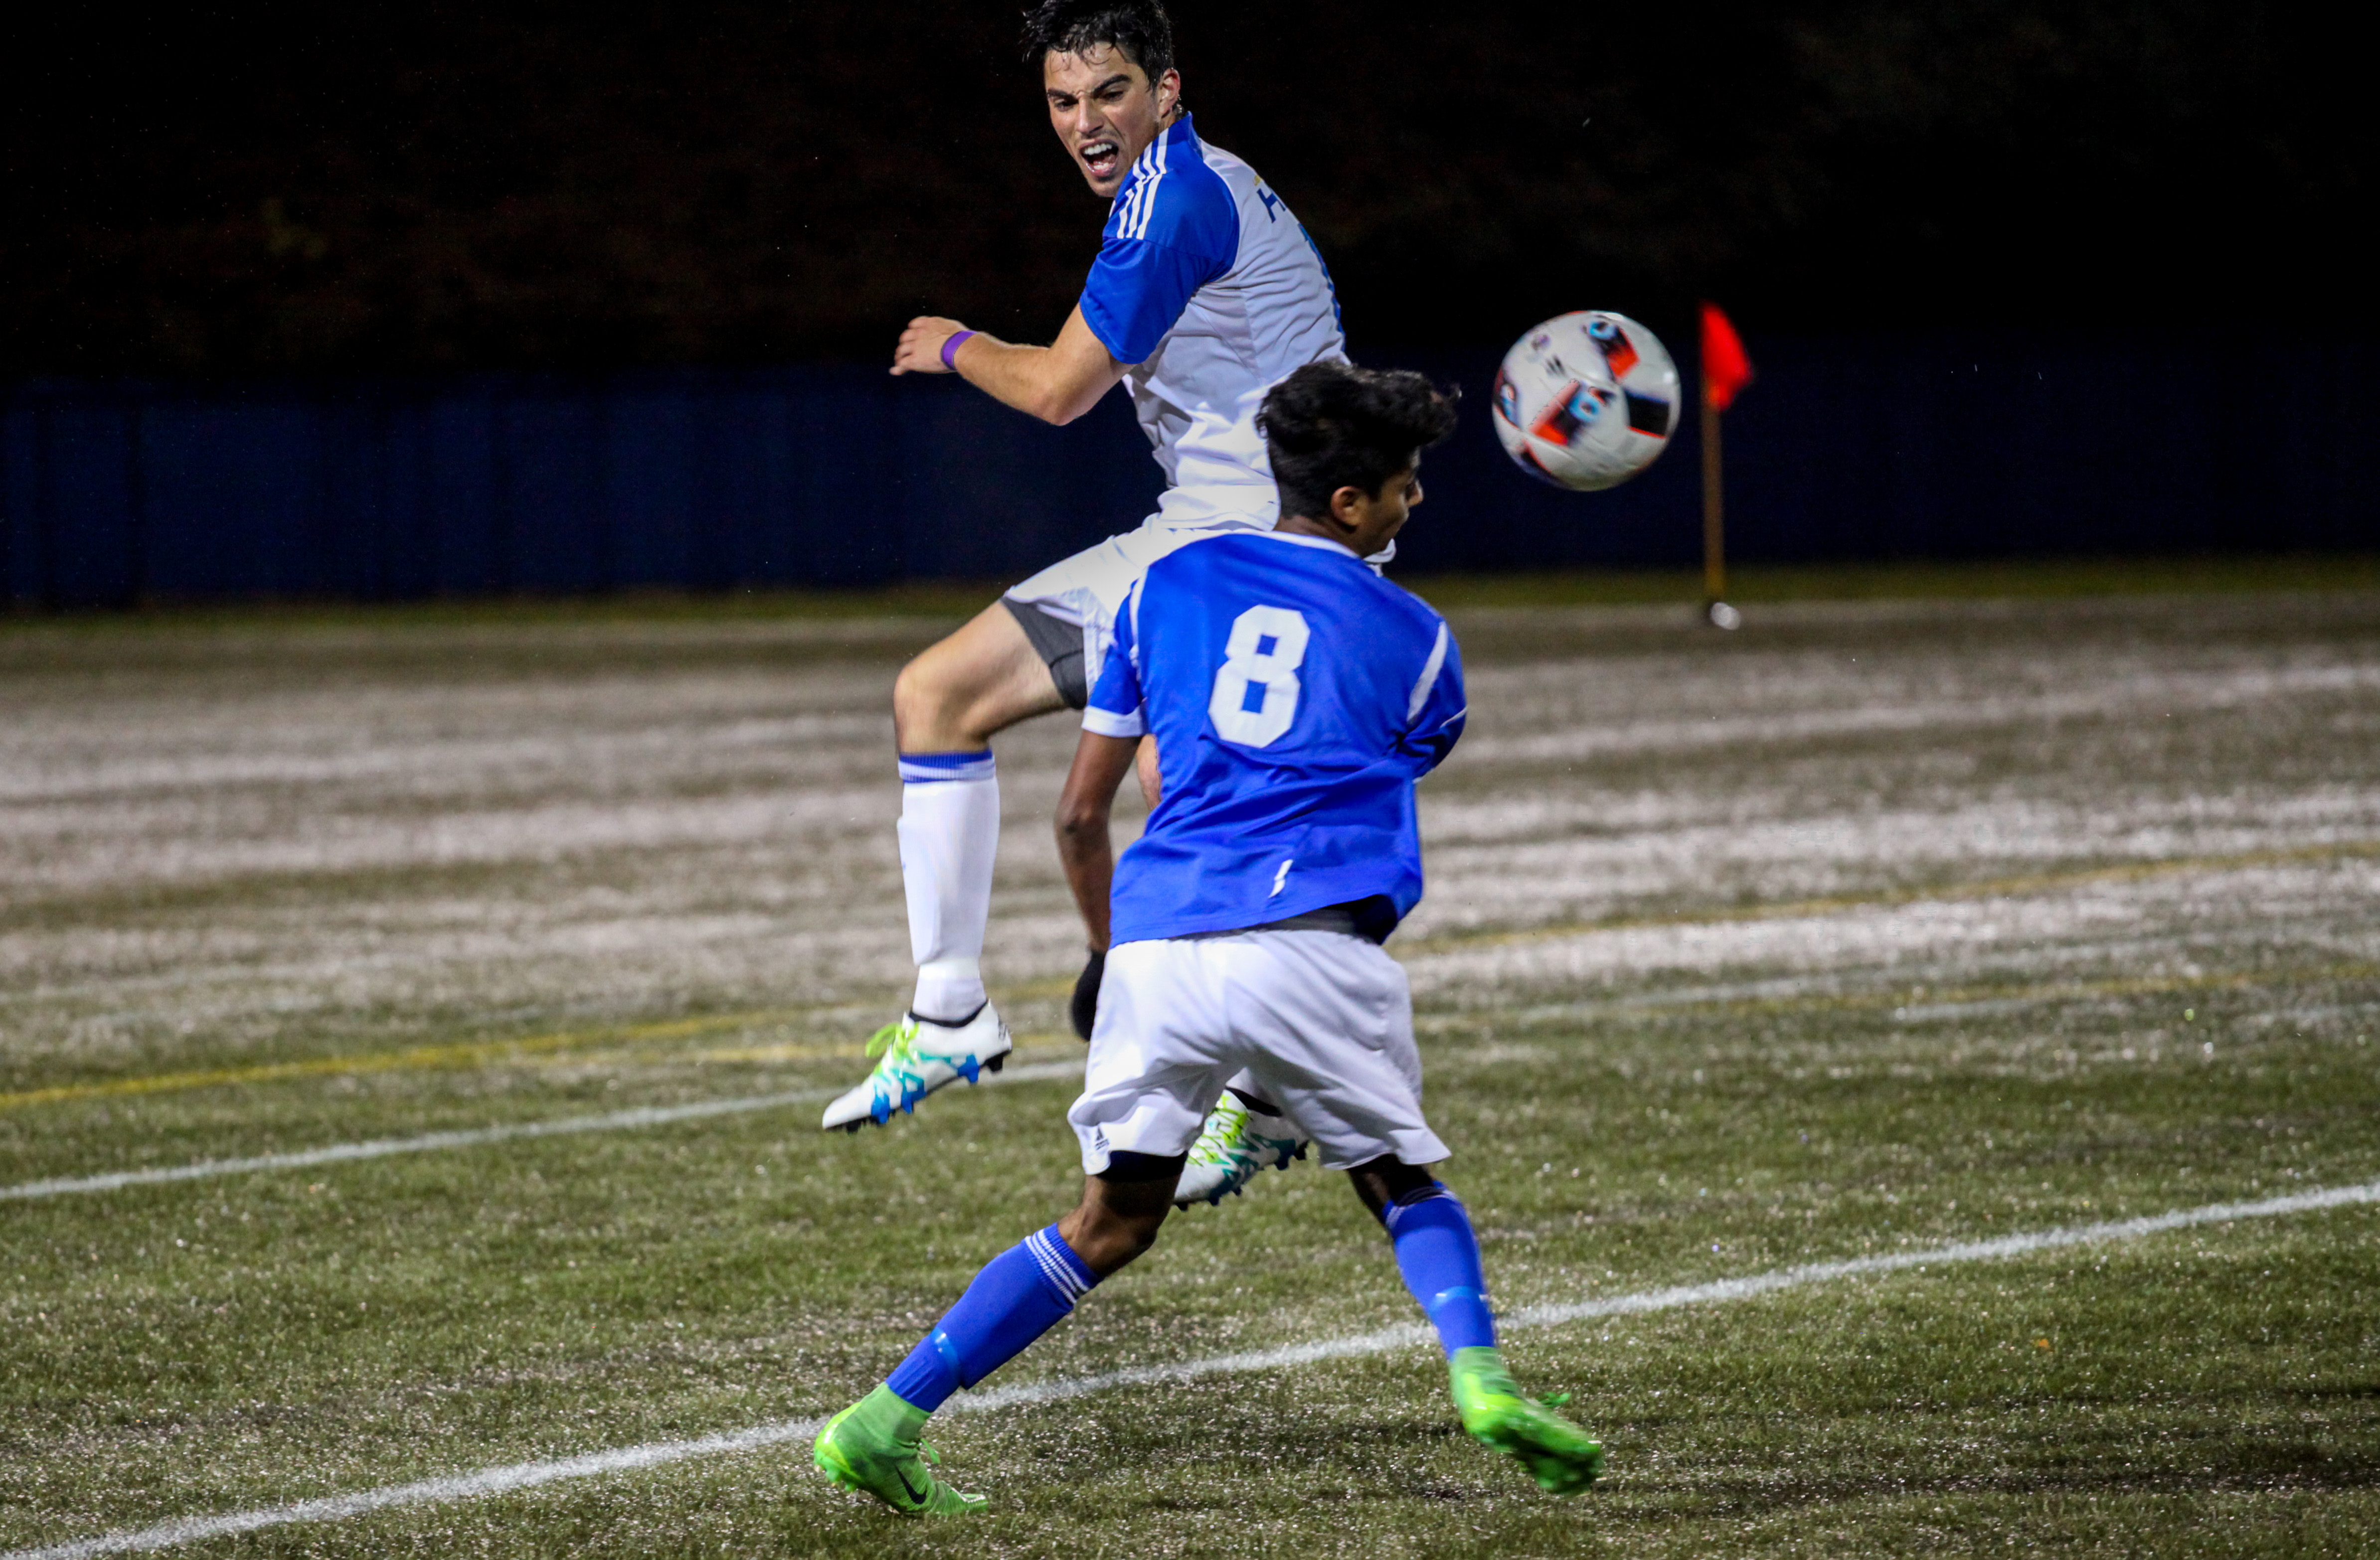 UBC forward Zach Verhoven fights for the ball against UBCO.